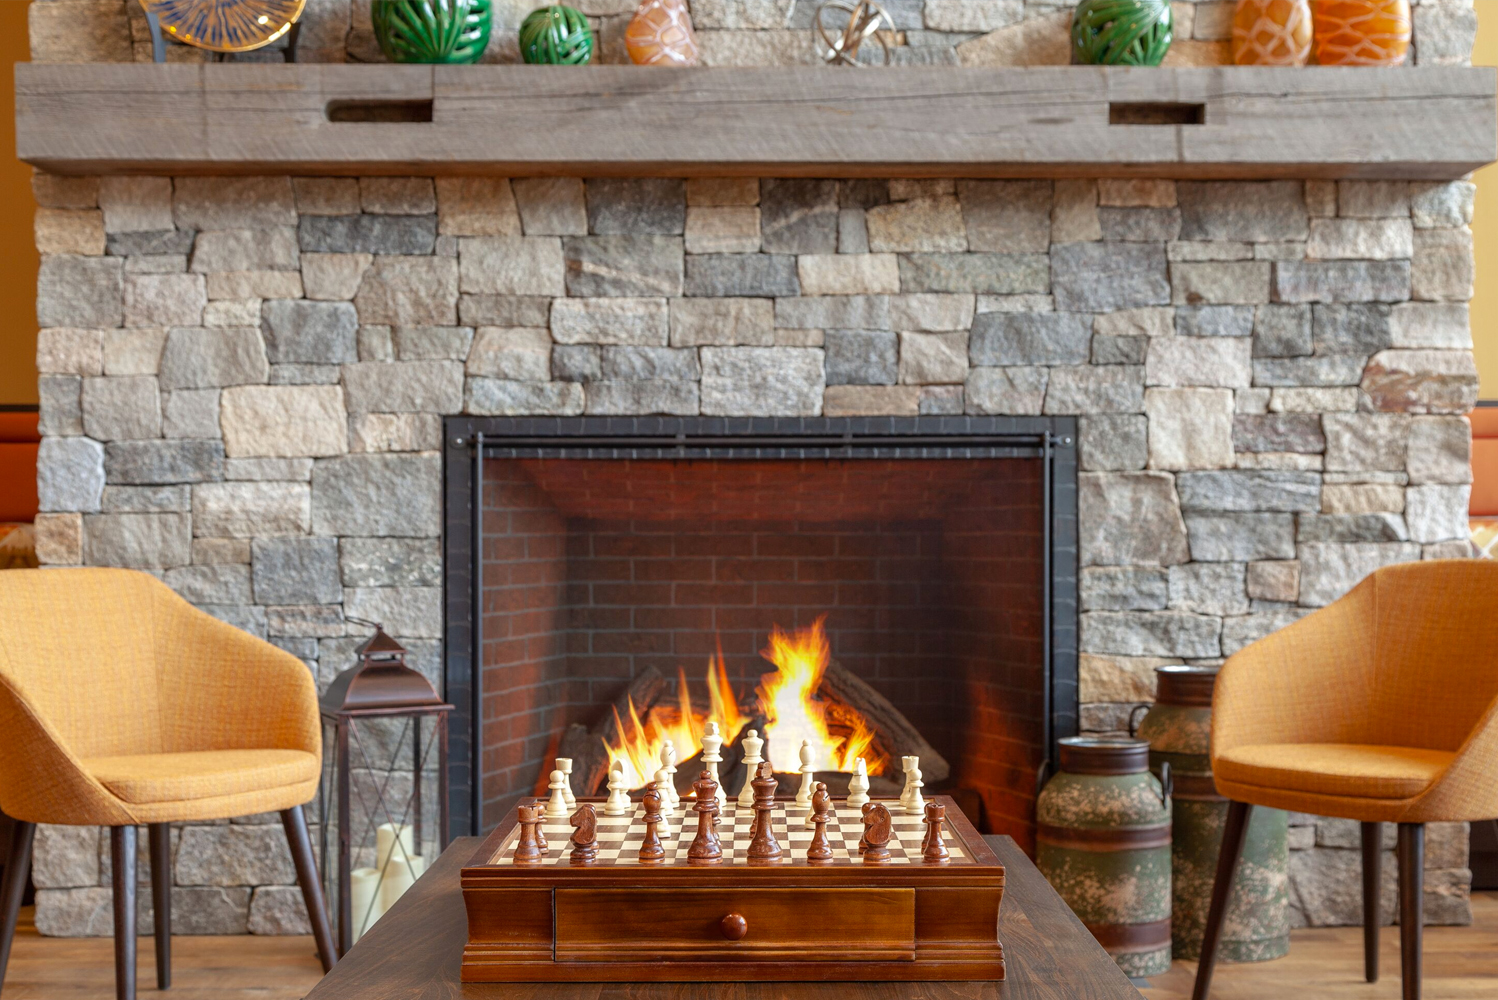 The interior design of the hotel drew upon the Shakers, with vintage woven baskets and artifacts of the local Abenaki Native Americans tribe and north woods culture seen throughout.